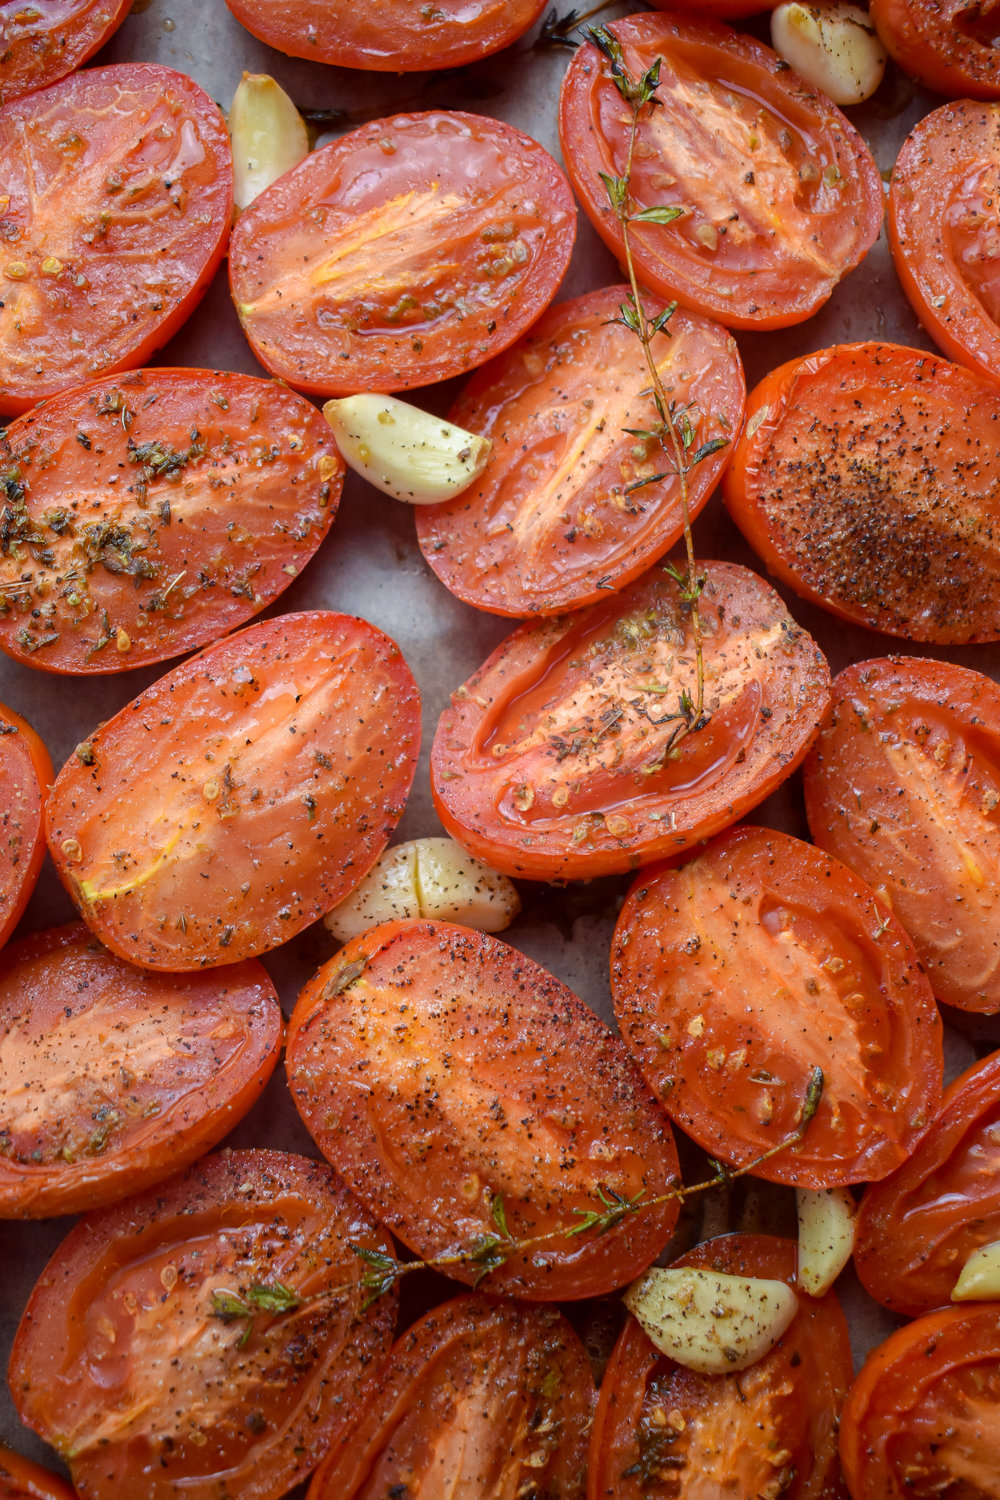 3. Layer the tomatoes, cut side up, on parchment-lined baking sheet. Add to preheated oven at 400F and roast for 45 minutes. When done you'll add to tomato soup.